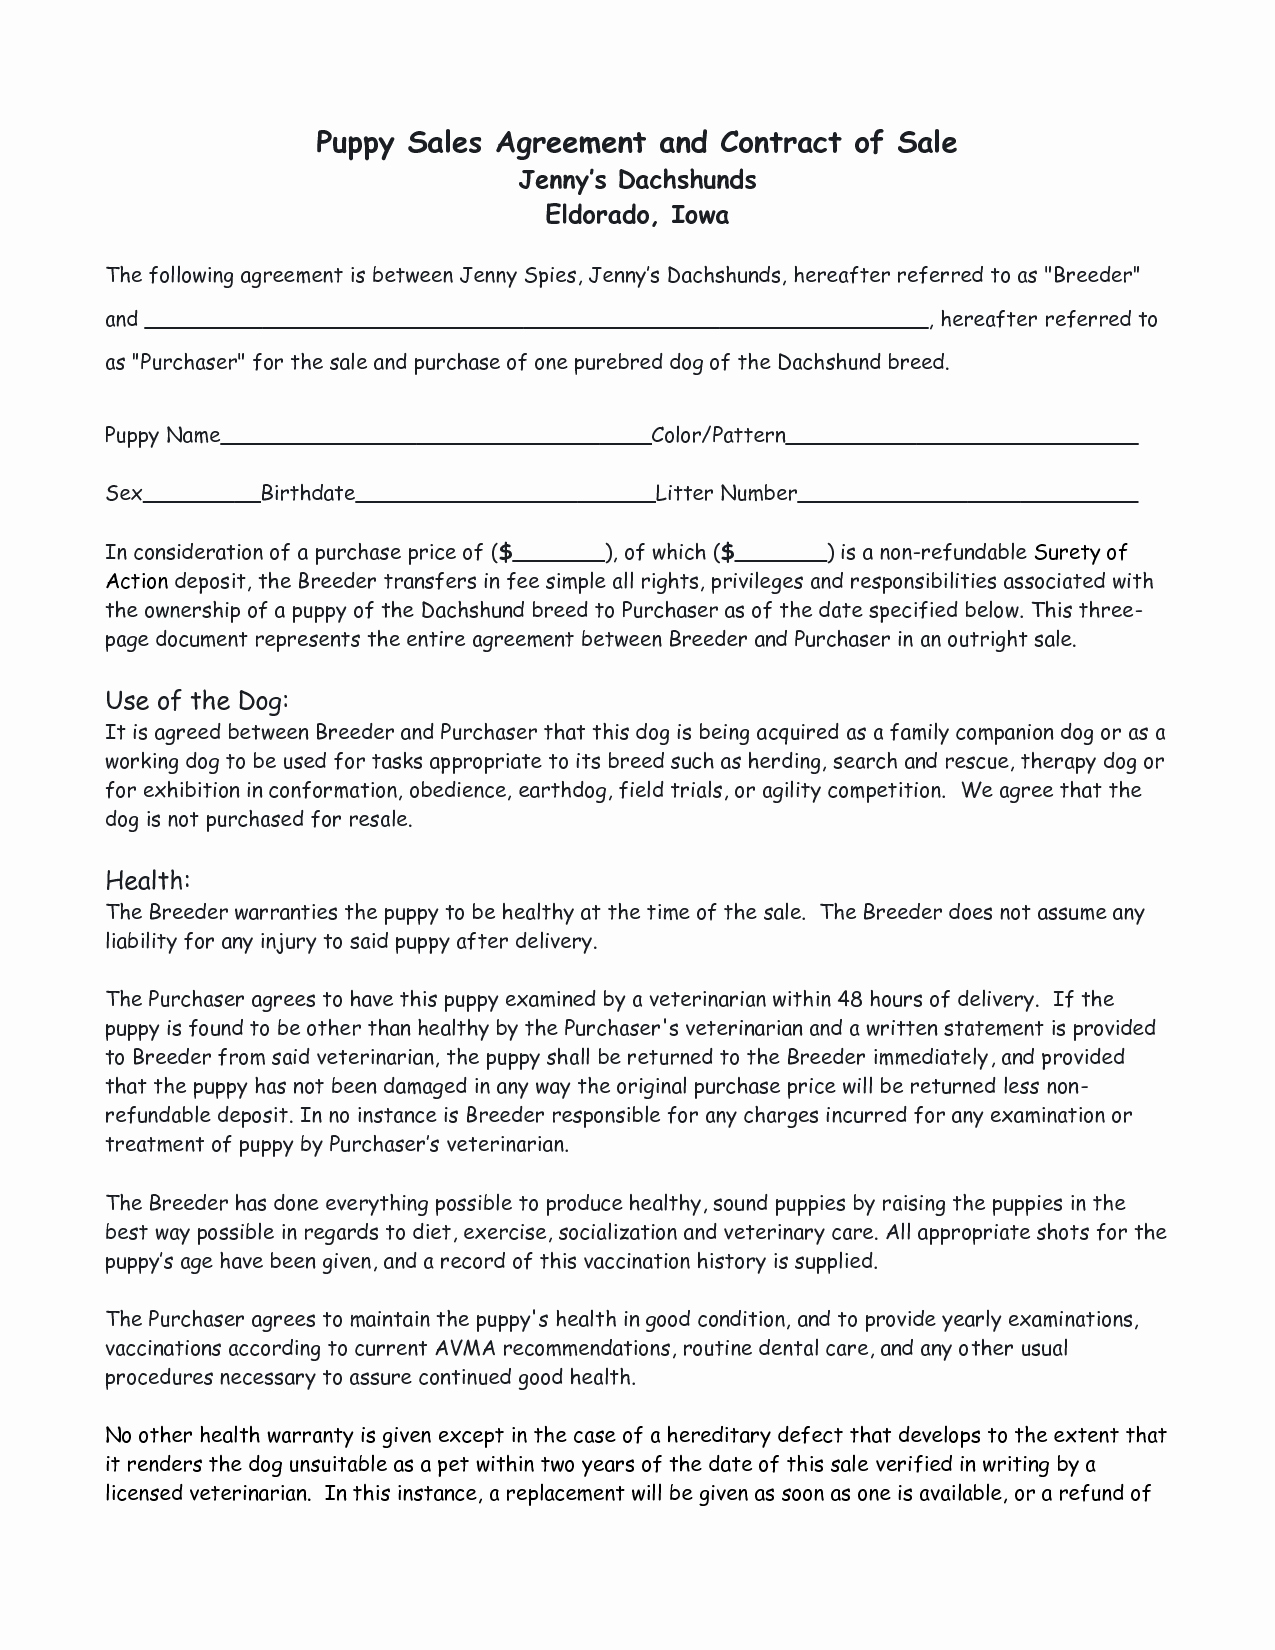 Puppy Sales Contract Template Fresh Puppy Sales Contract Design Templates